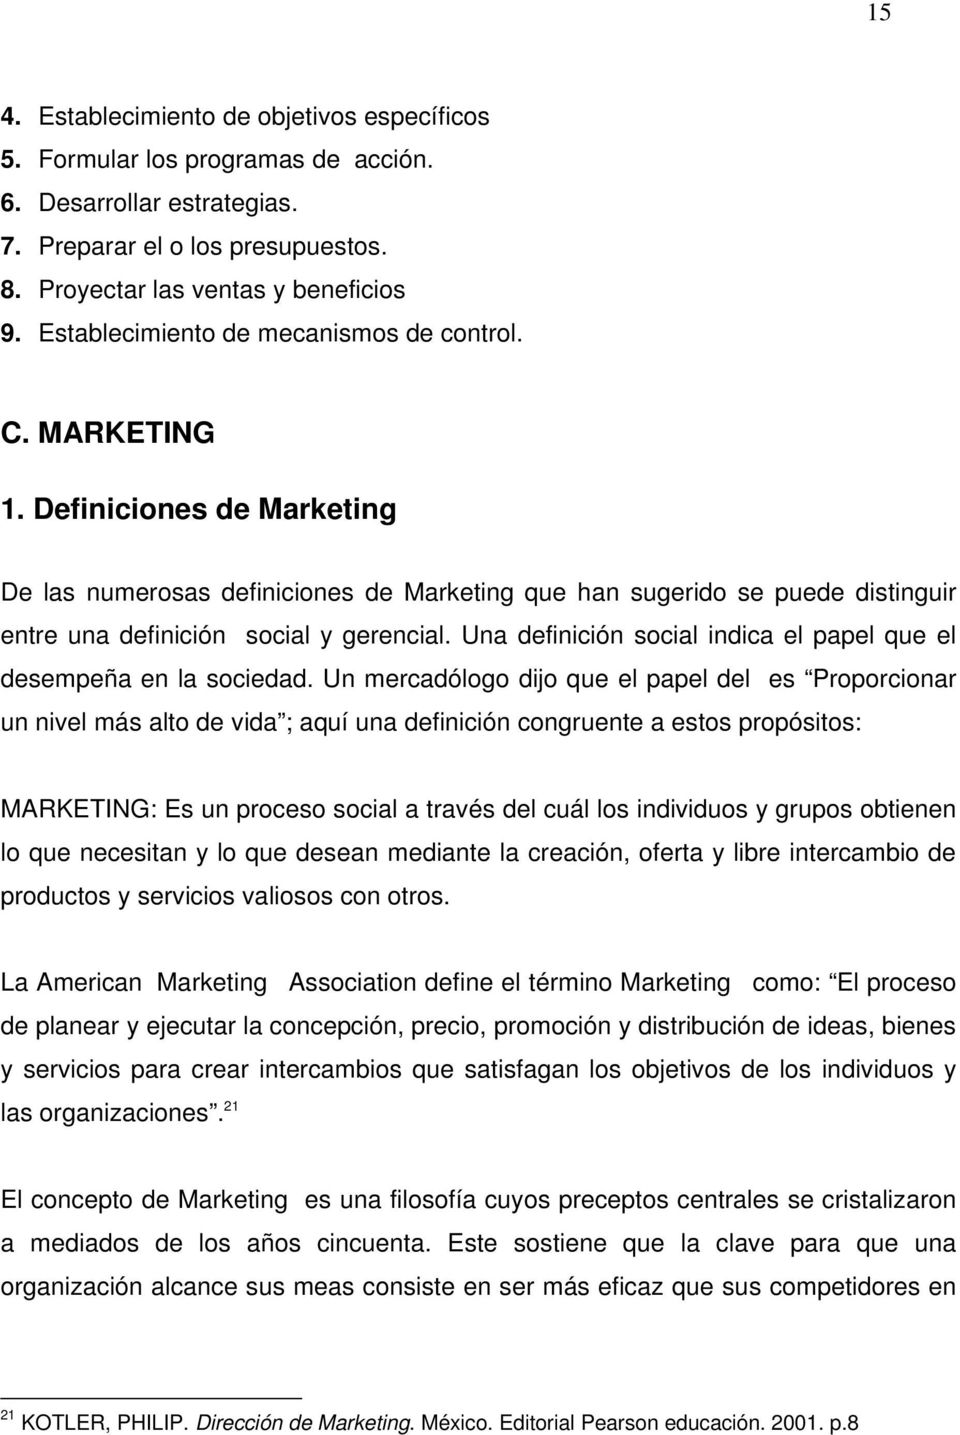 Definiciones de Marketing De las numerosas definiciones de Marketing que han sugerido se puede distinguir entre una definición social y gerencial.